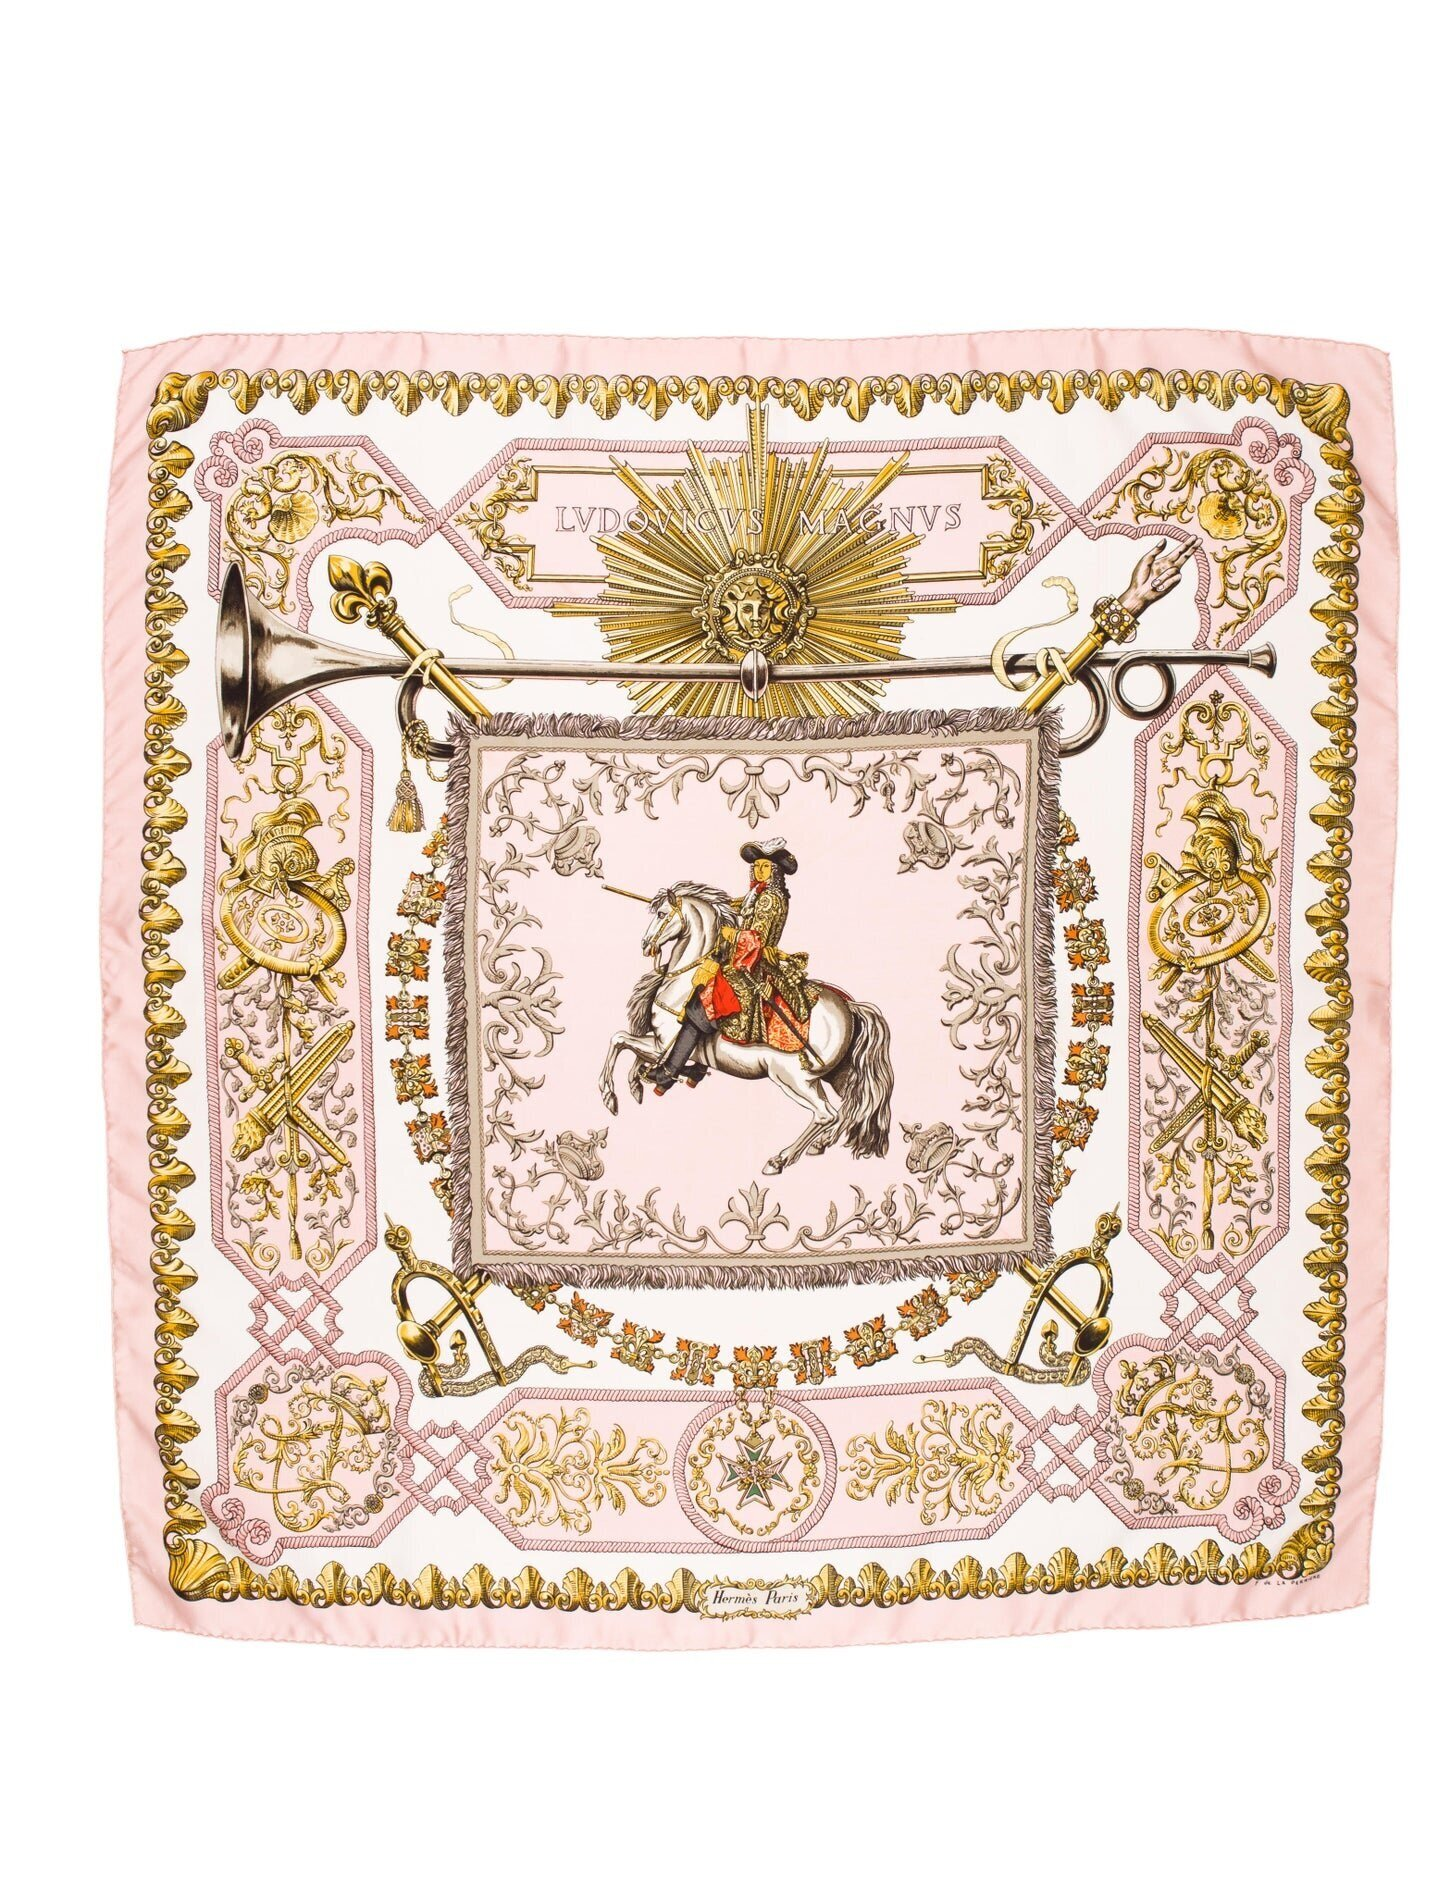 Hermes Scarf - Second Hand from The Real Real